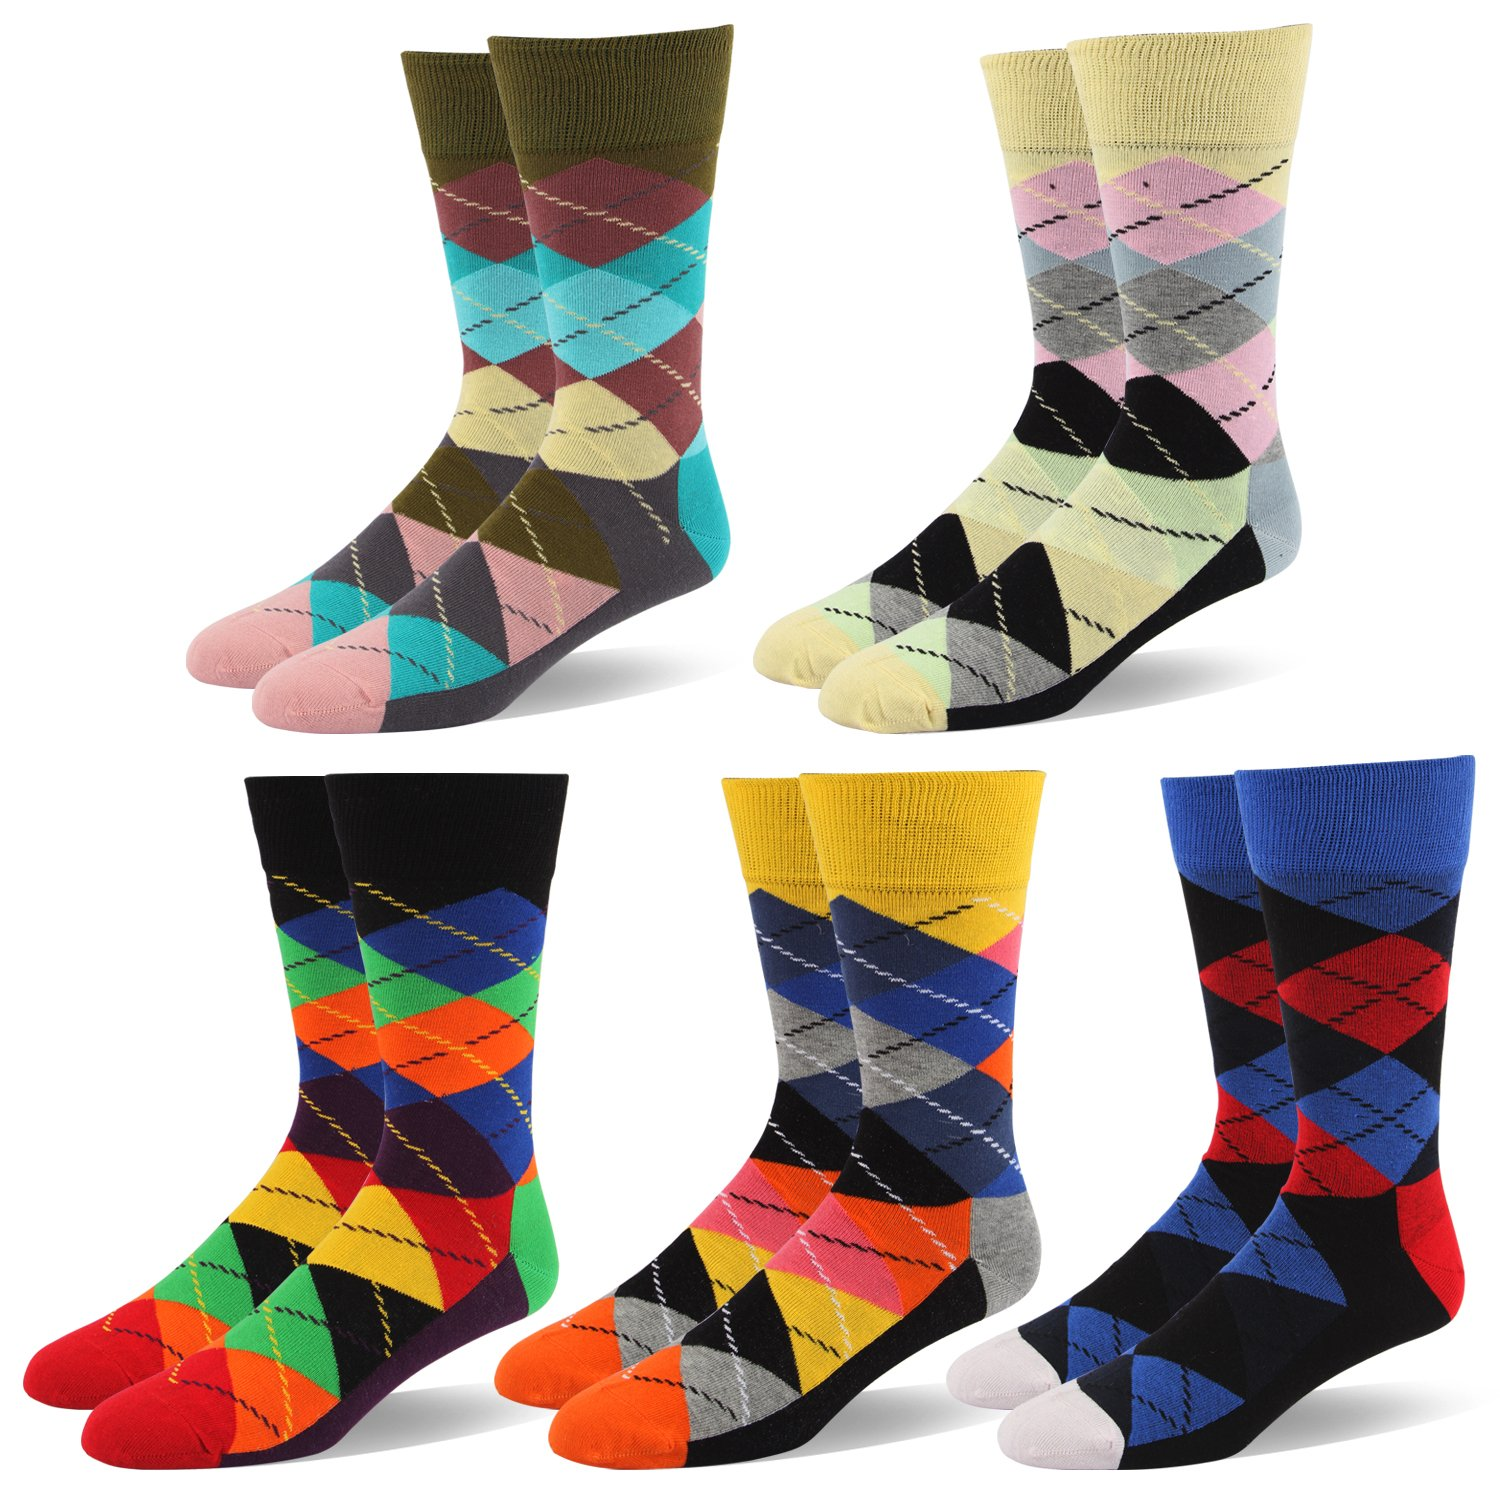 90% Cotton Men Dress Socks -Assorted style Fun Designed Patterned Colorful For Casual Home Size 9 10 11 12 13 14 15 16